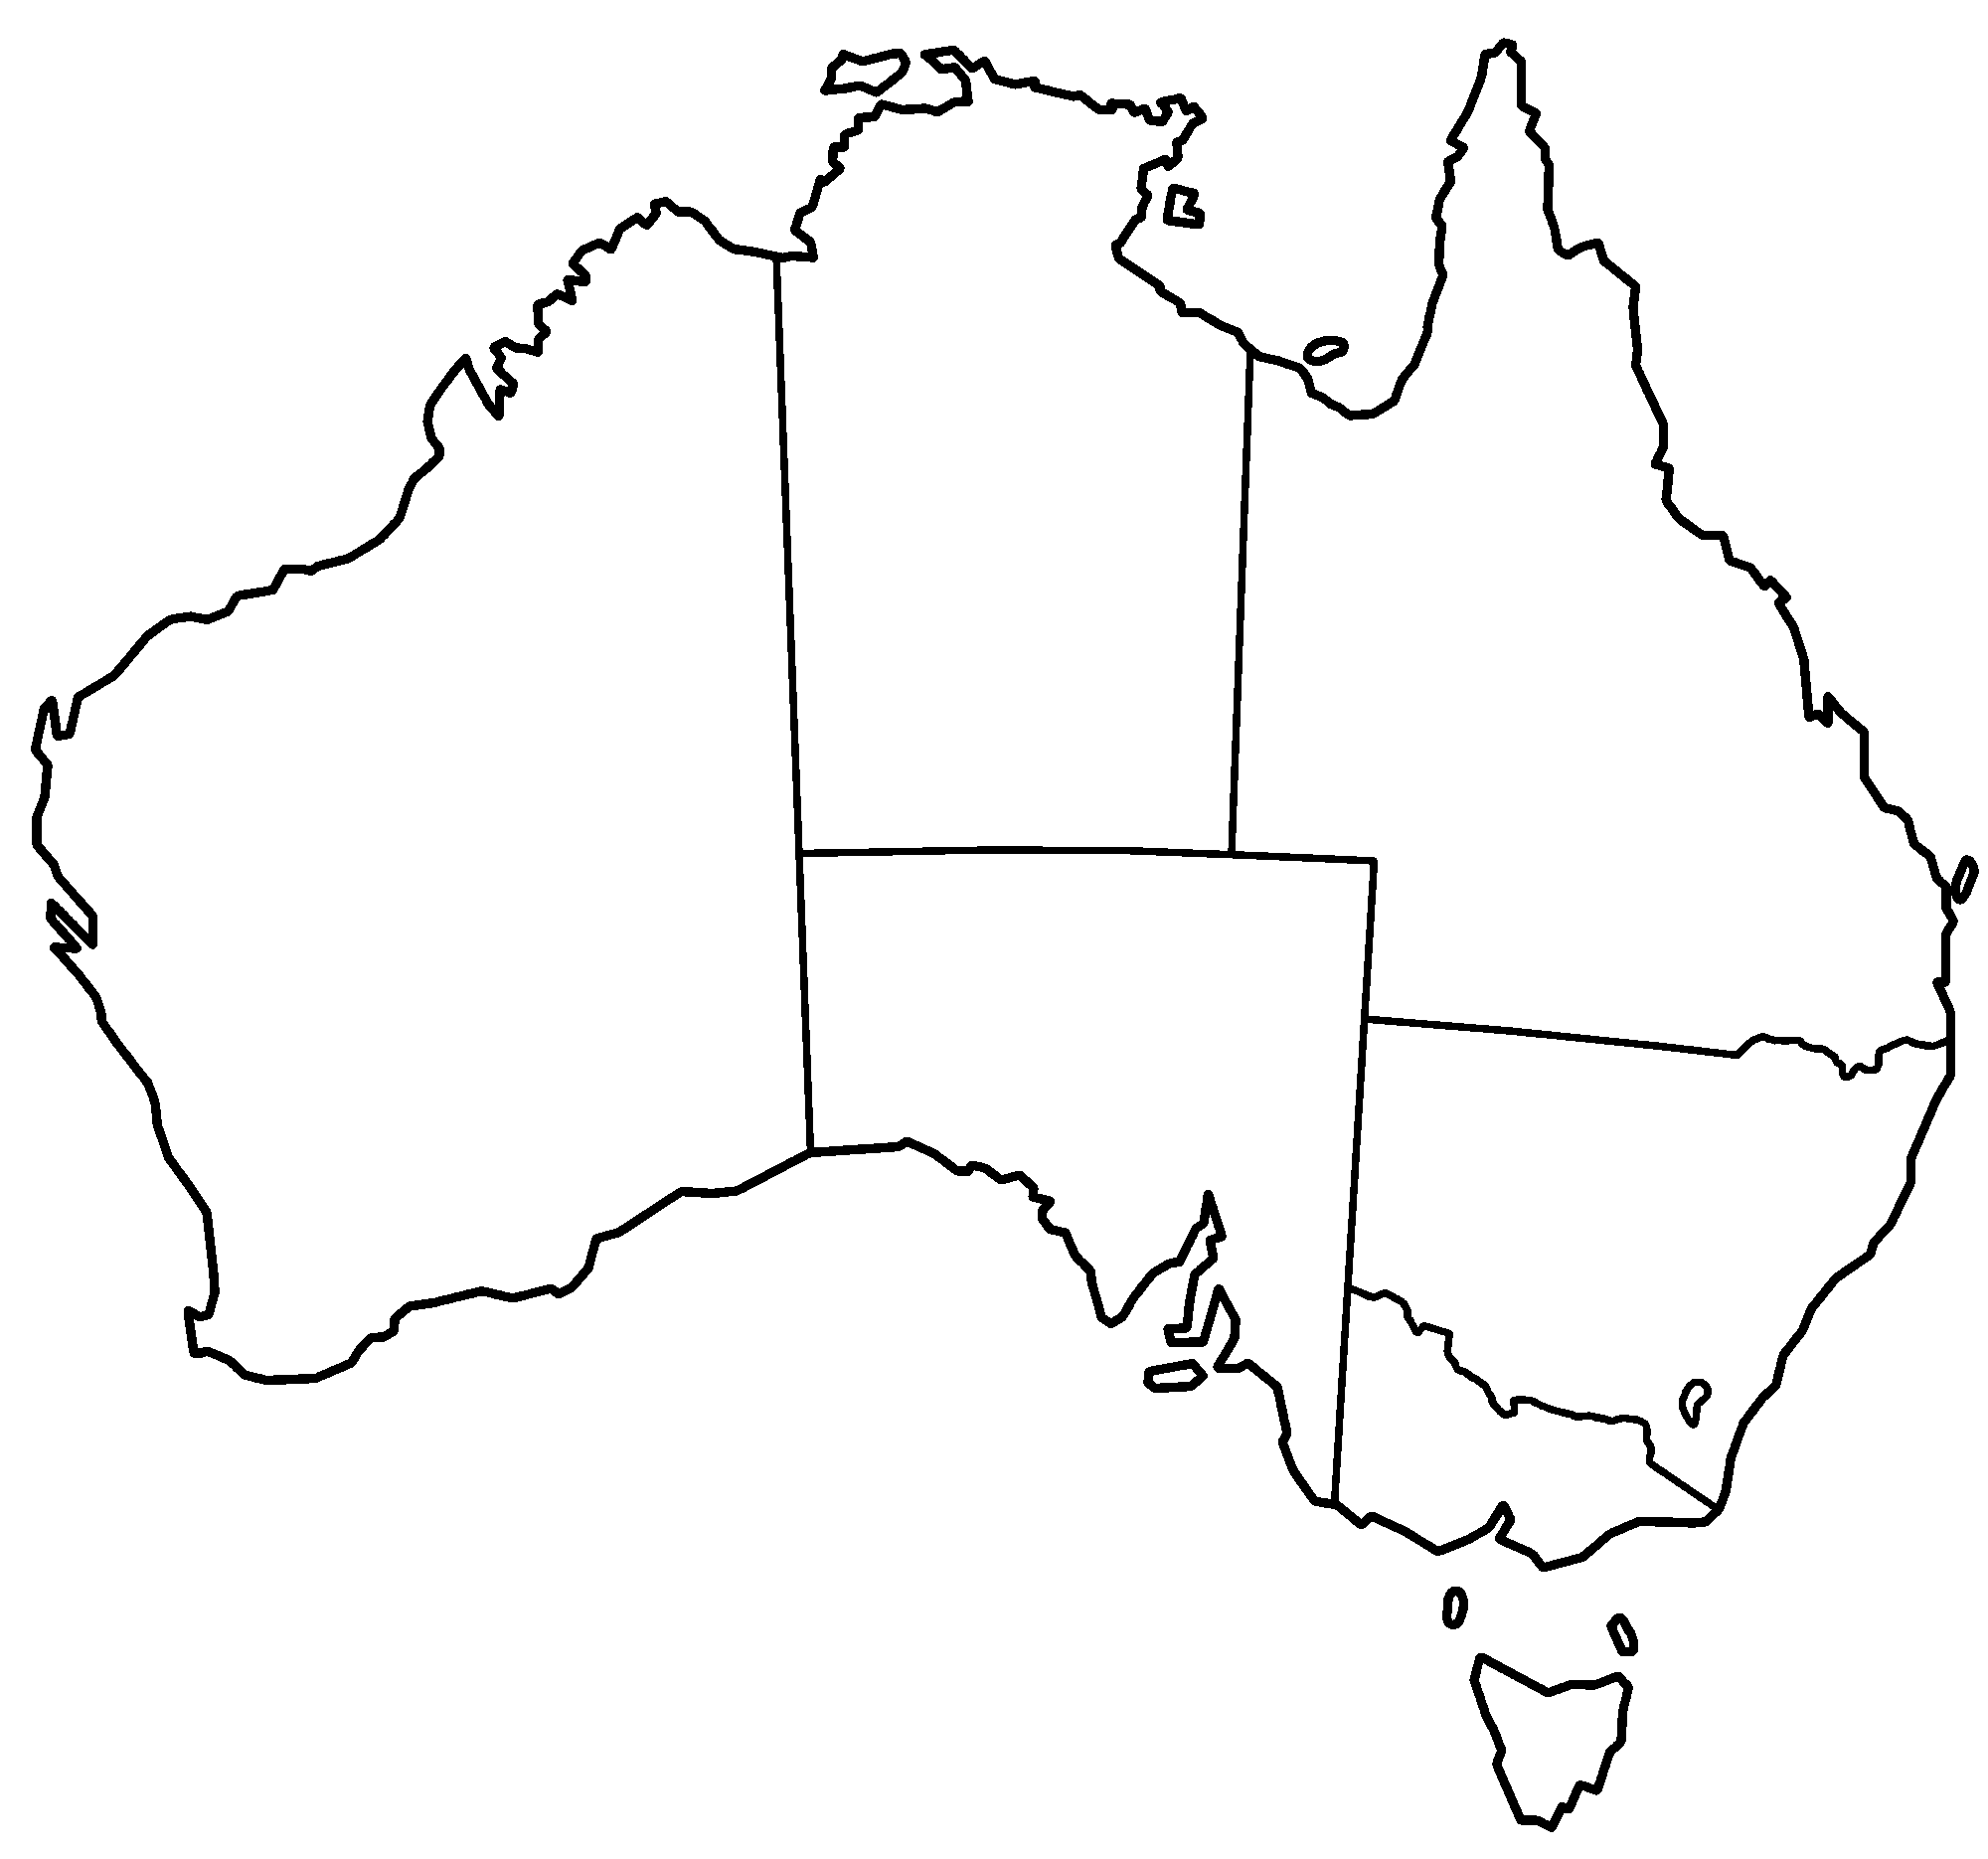 Blank Map Of Australia Australia States Blank • Mapsof.net Blank Map Of Australia